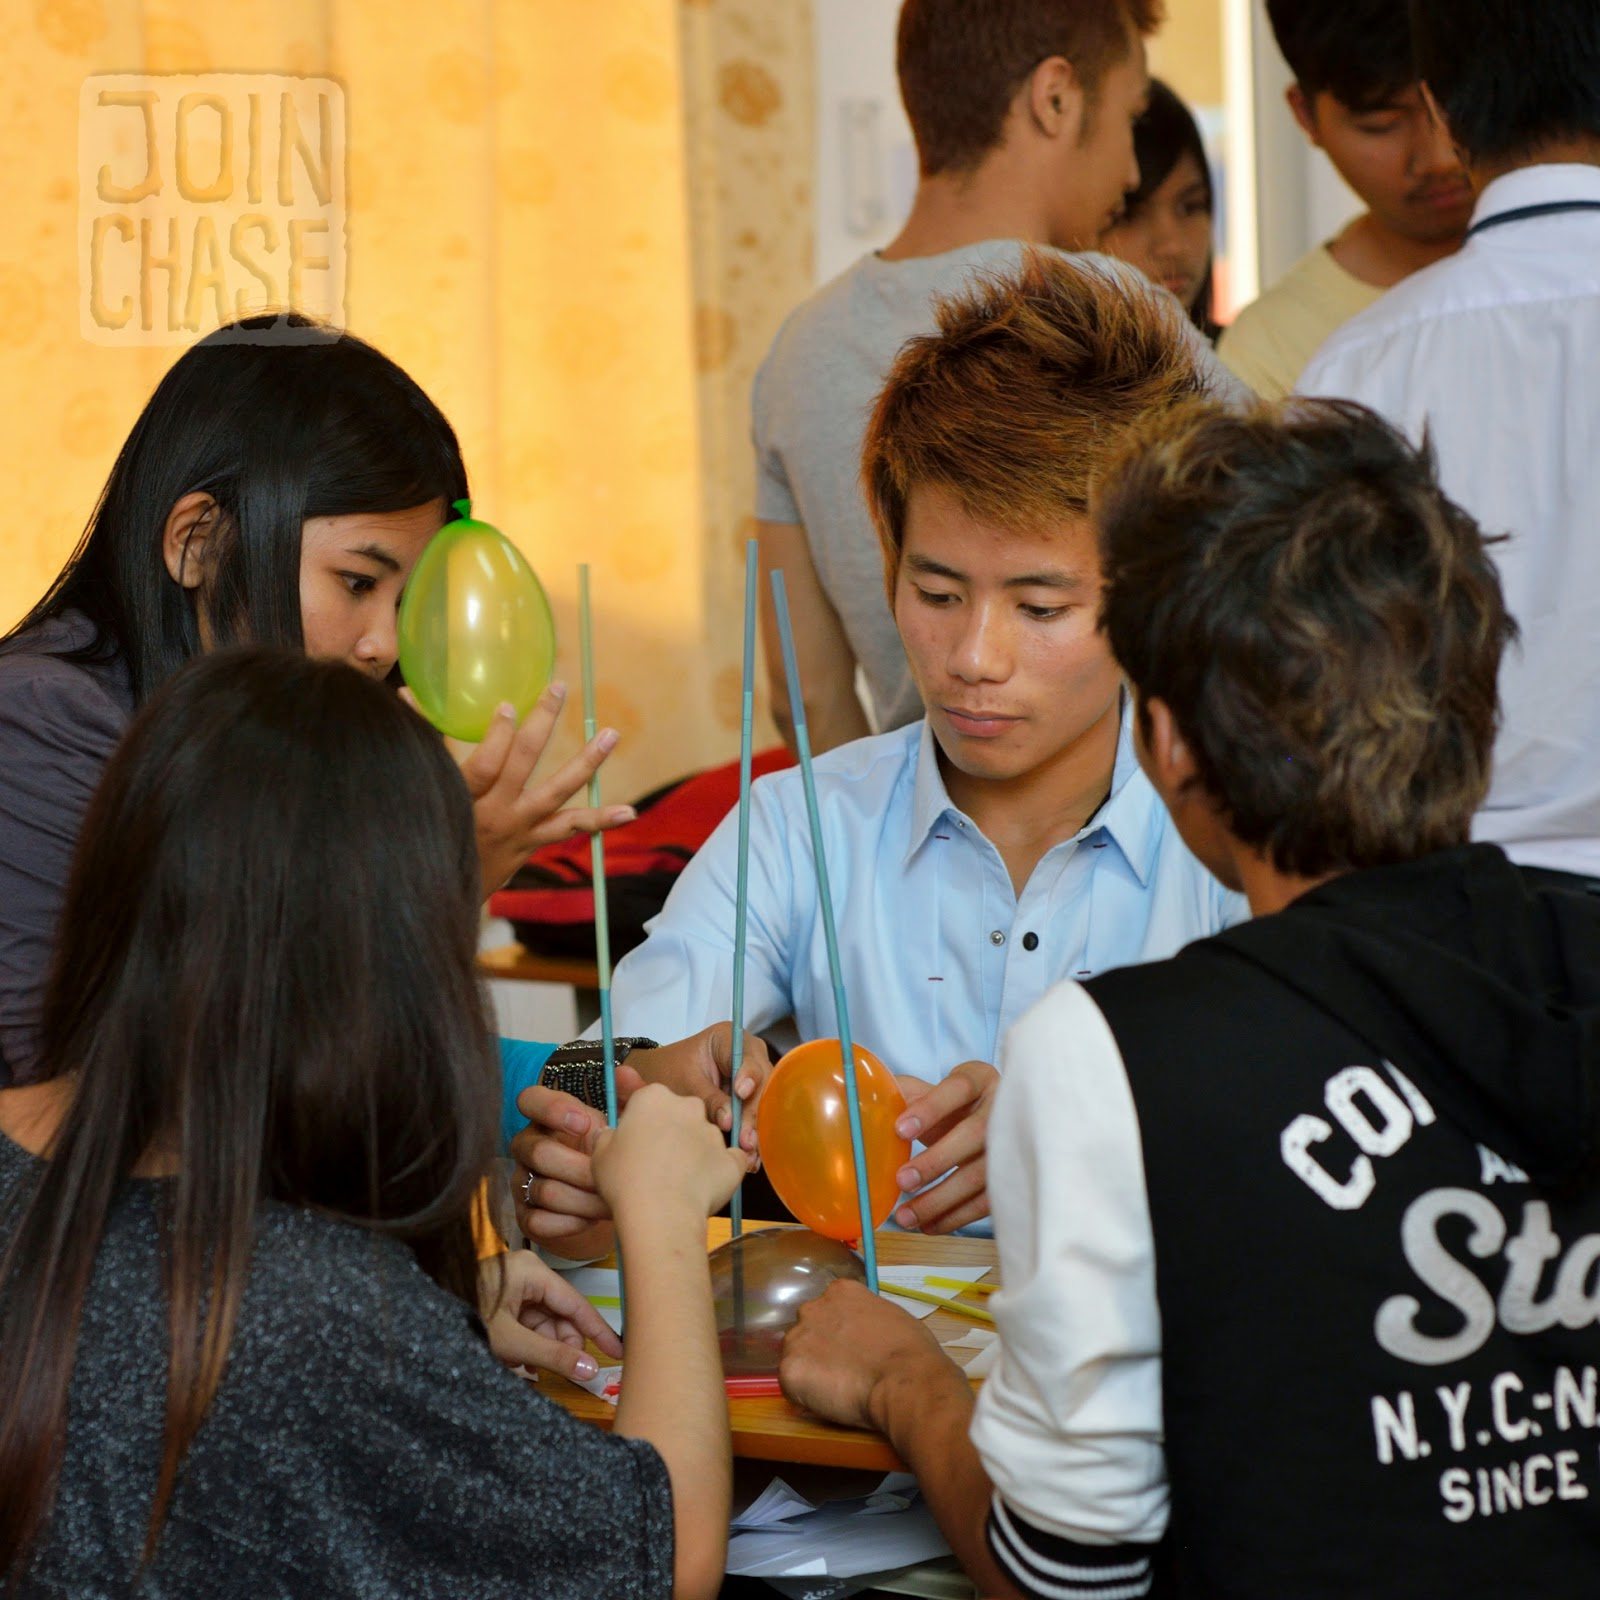 Students building balloon towers during English class in Yangon, Myanmar.